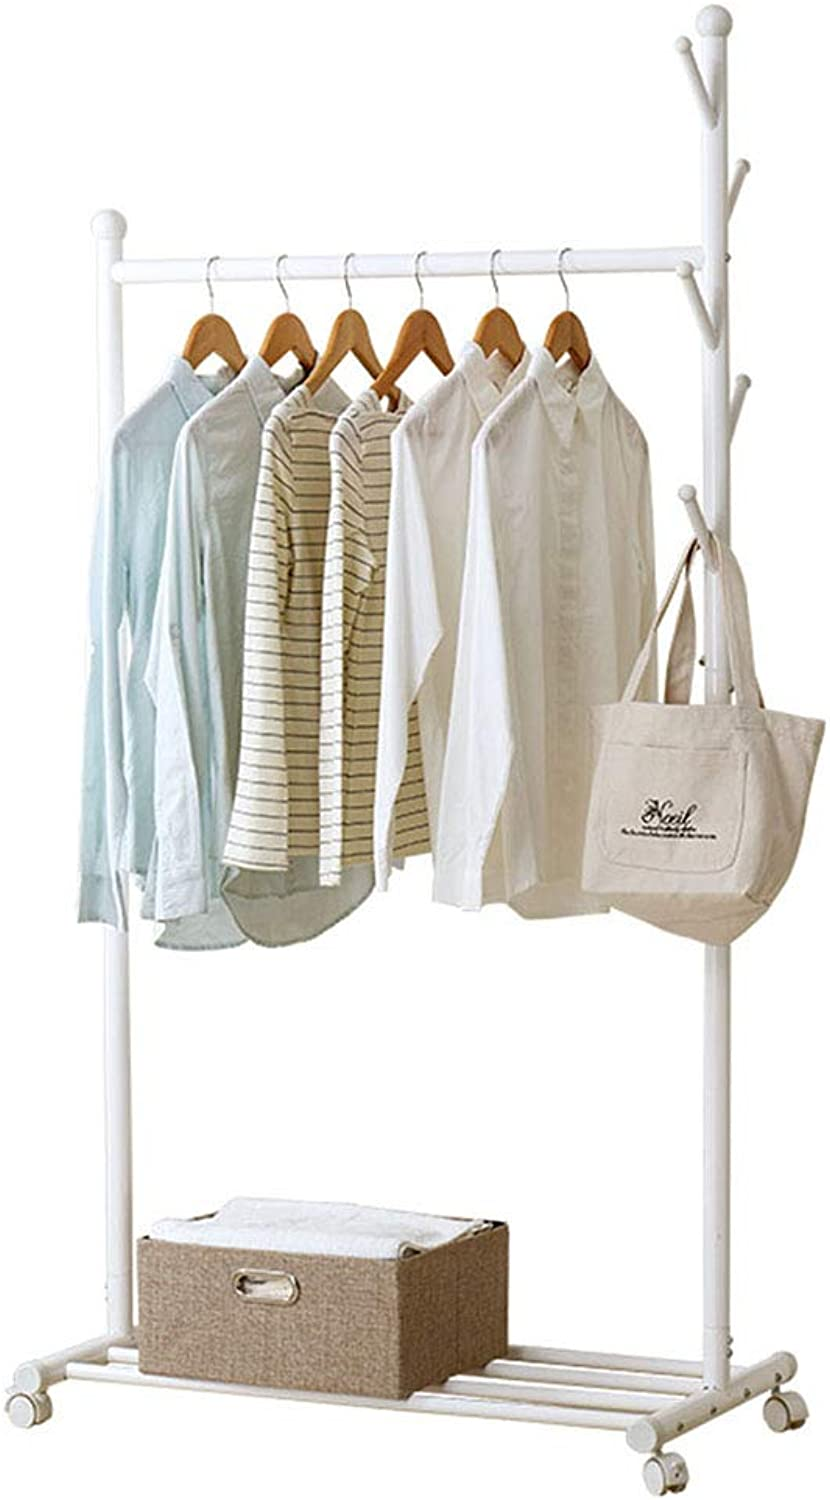 XIAOLONG Clothes Racks Indoor and Outdoor Removable Coat Racks Balcony Clothes Rails Drying Racks 88  43  165CM -45 (color   White)